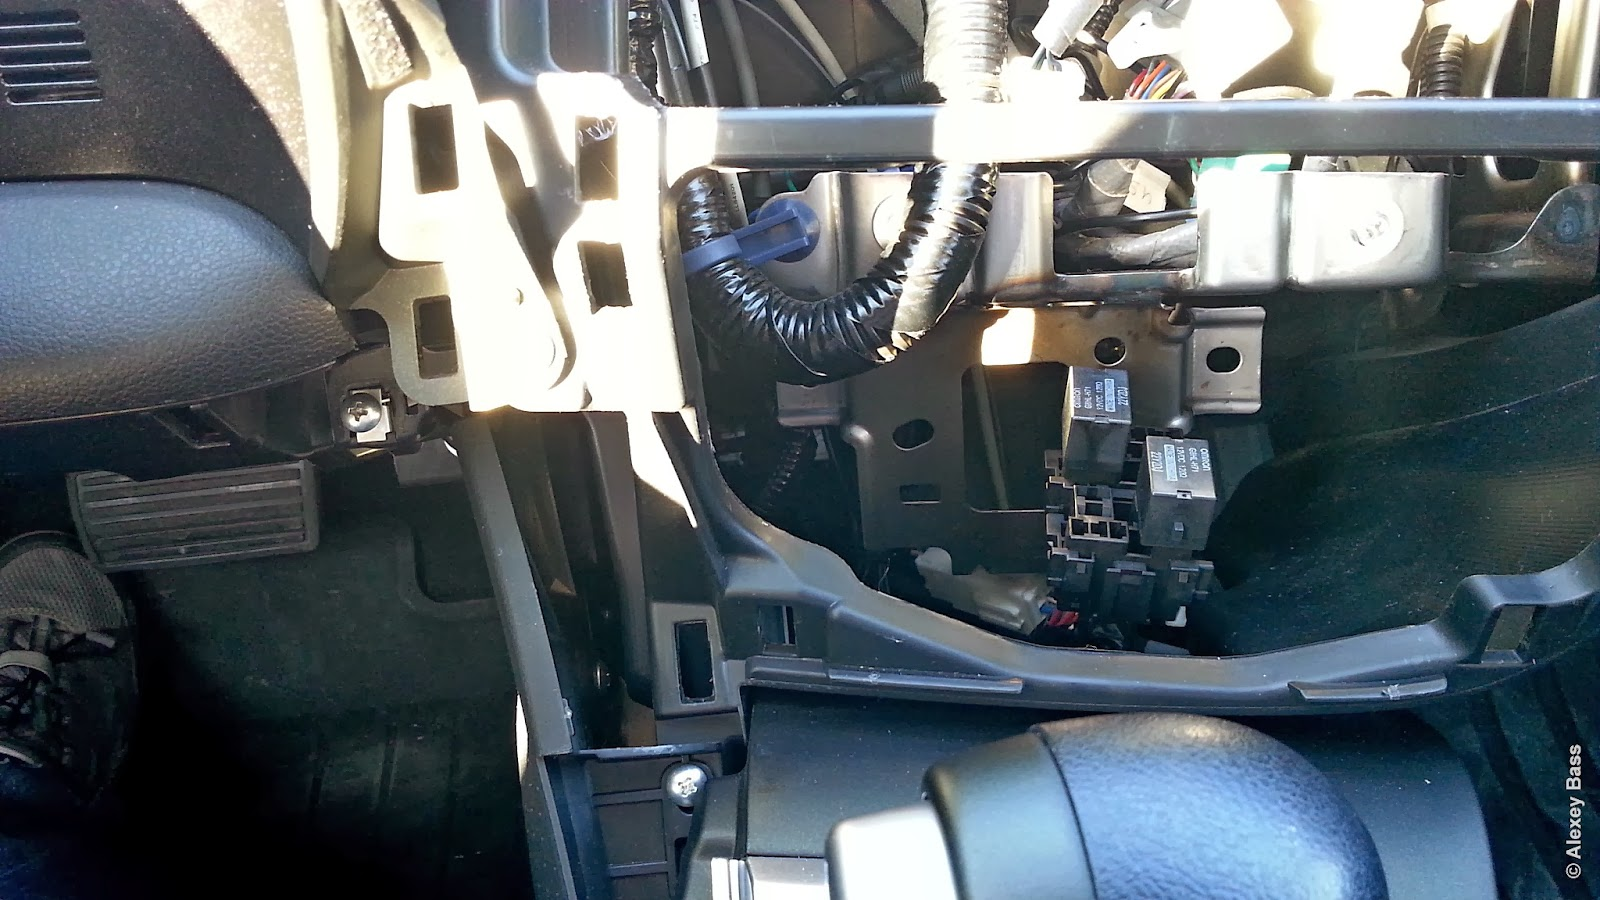 New Honda Civic Hatchback Mk9 2013 Relay Locations Power Position B 7 2 Behind Radio And Air Controls